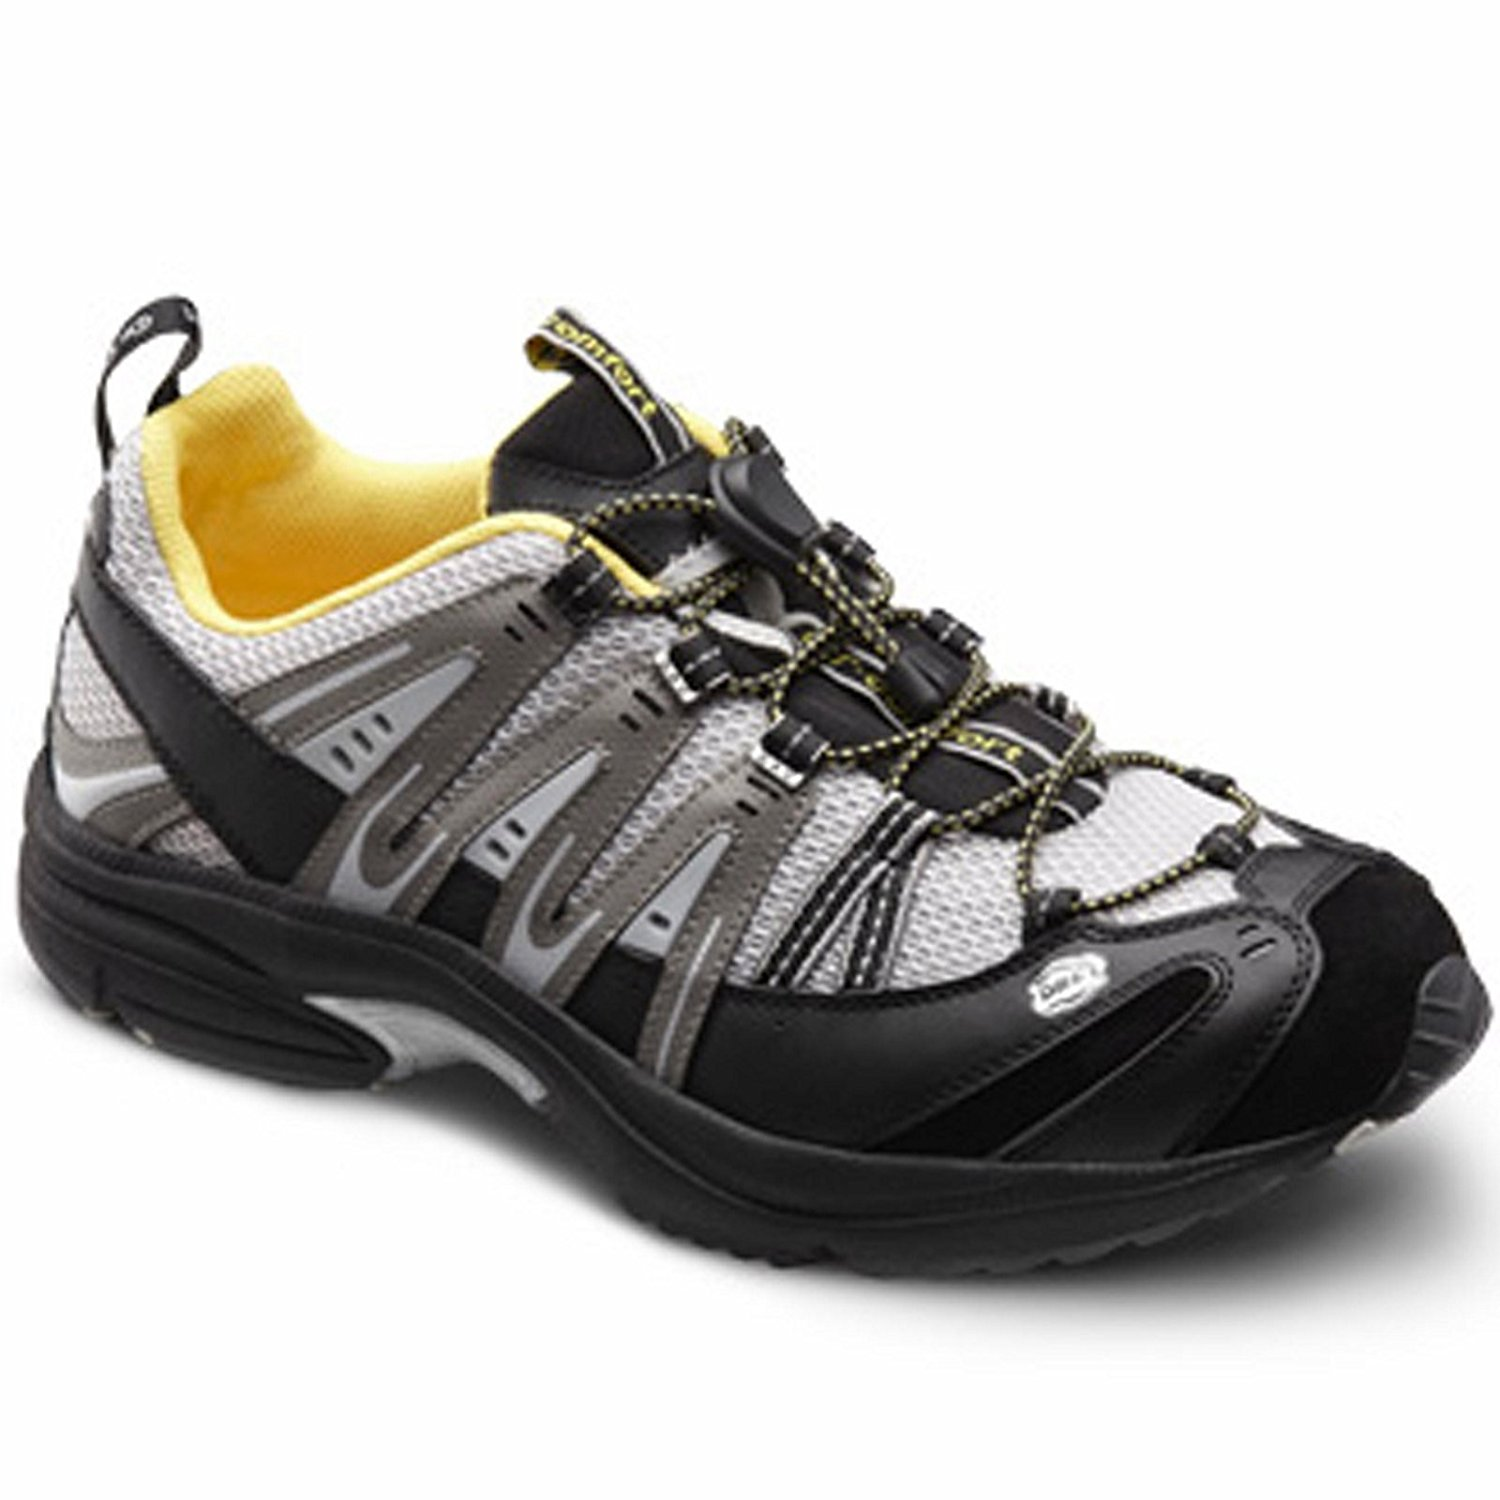 Get A Foot Friend Comfort Shoe-makes easy to walk